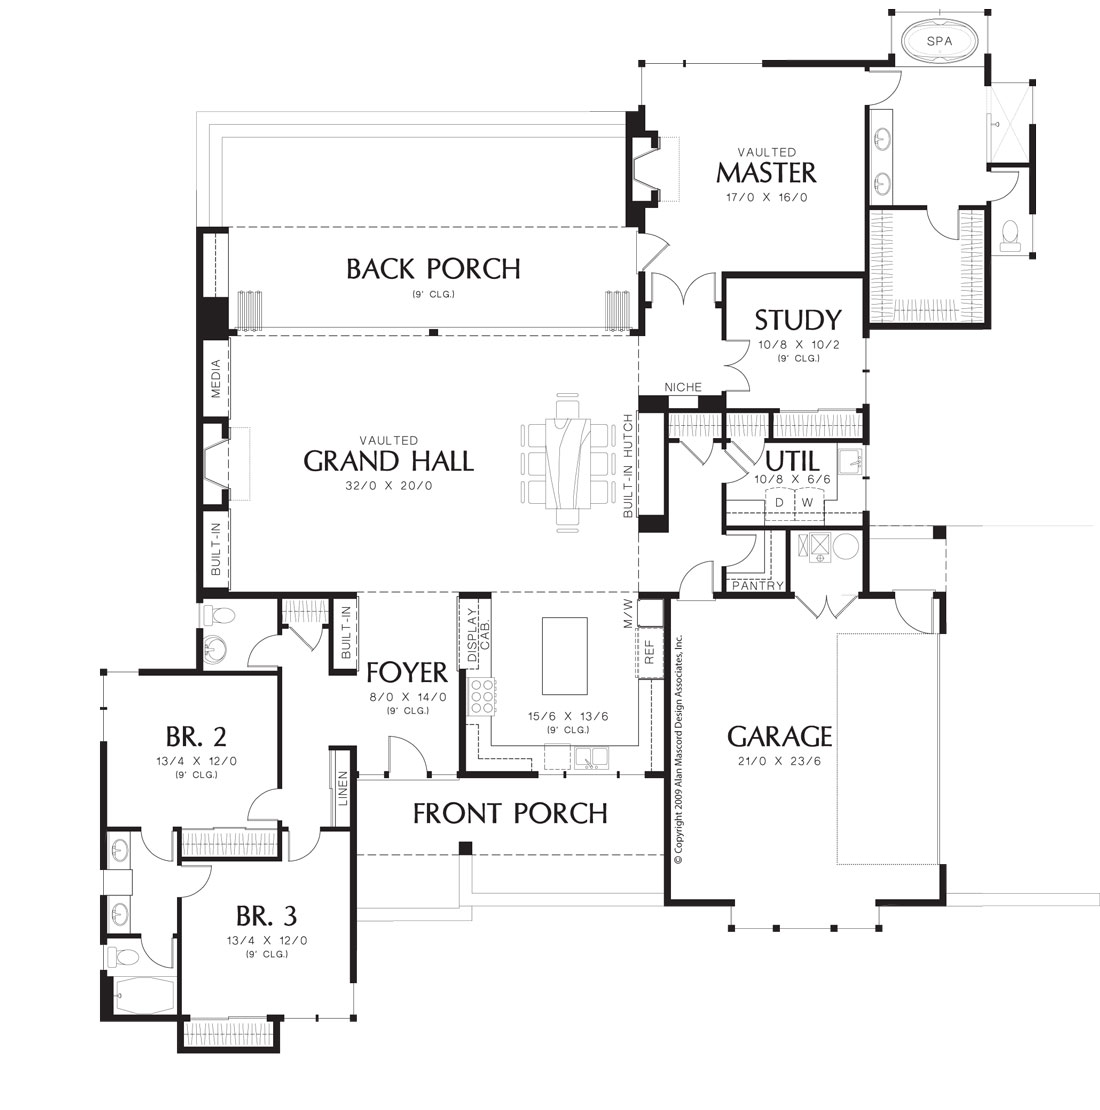 Stanley 1494 3 bedrooms and 2 baths the house designers for Stanley home designs